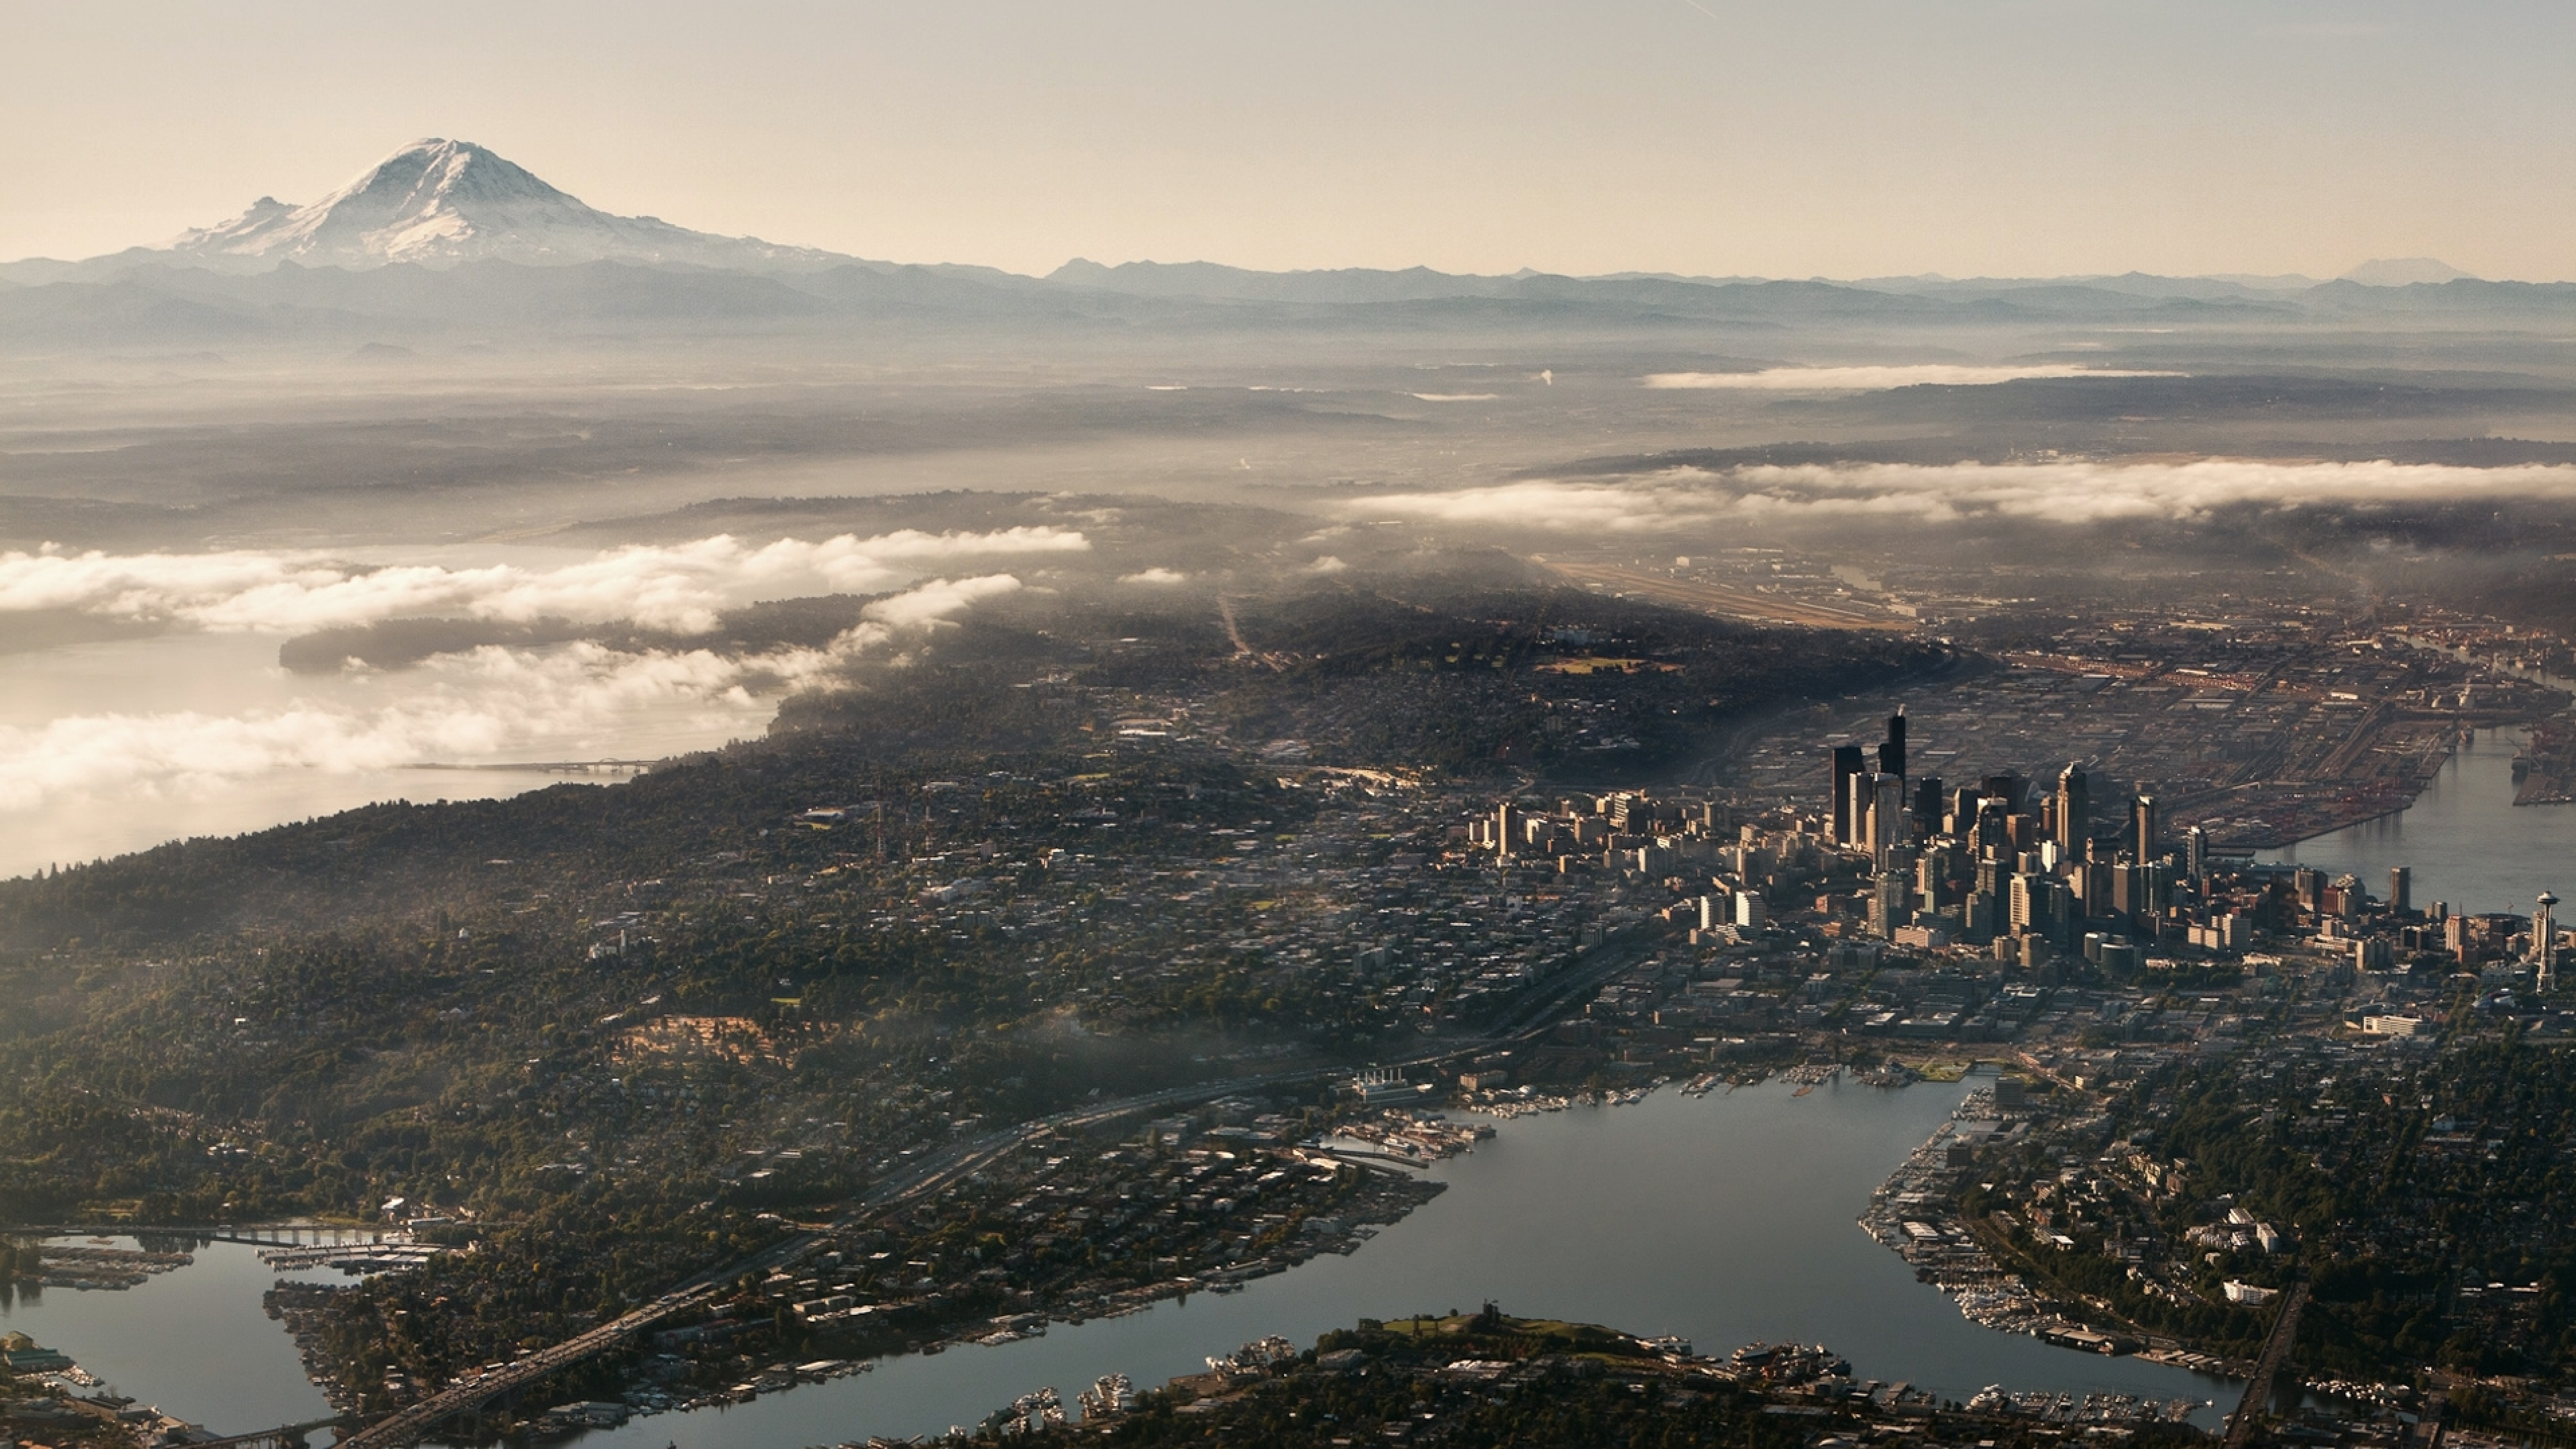 3840x2160 Seattle Usa Top View 4k Wallpaper Hd City 4k Wallpapers Images Photos And Background